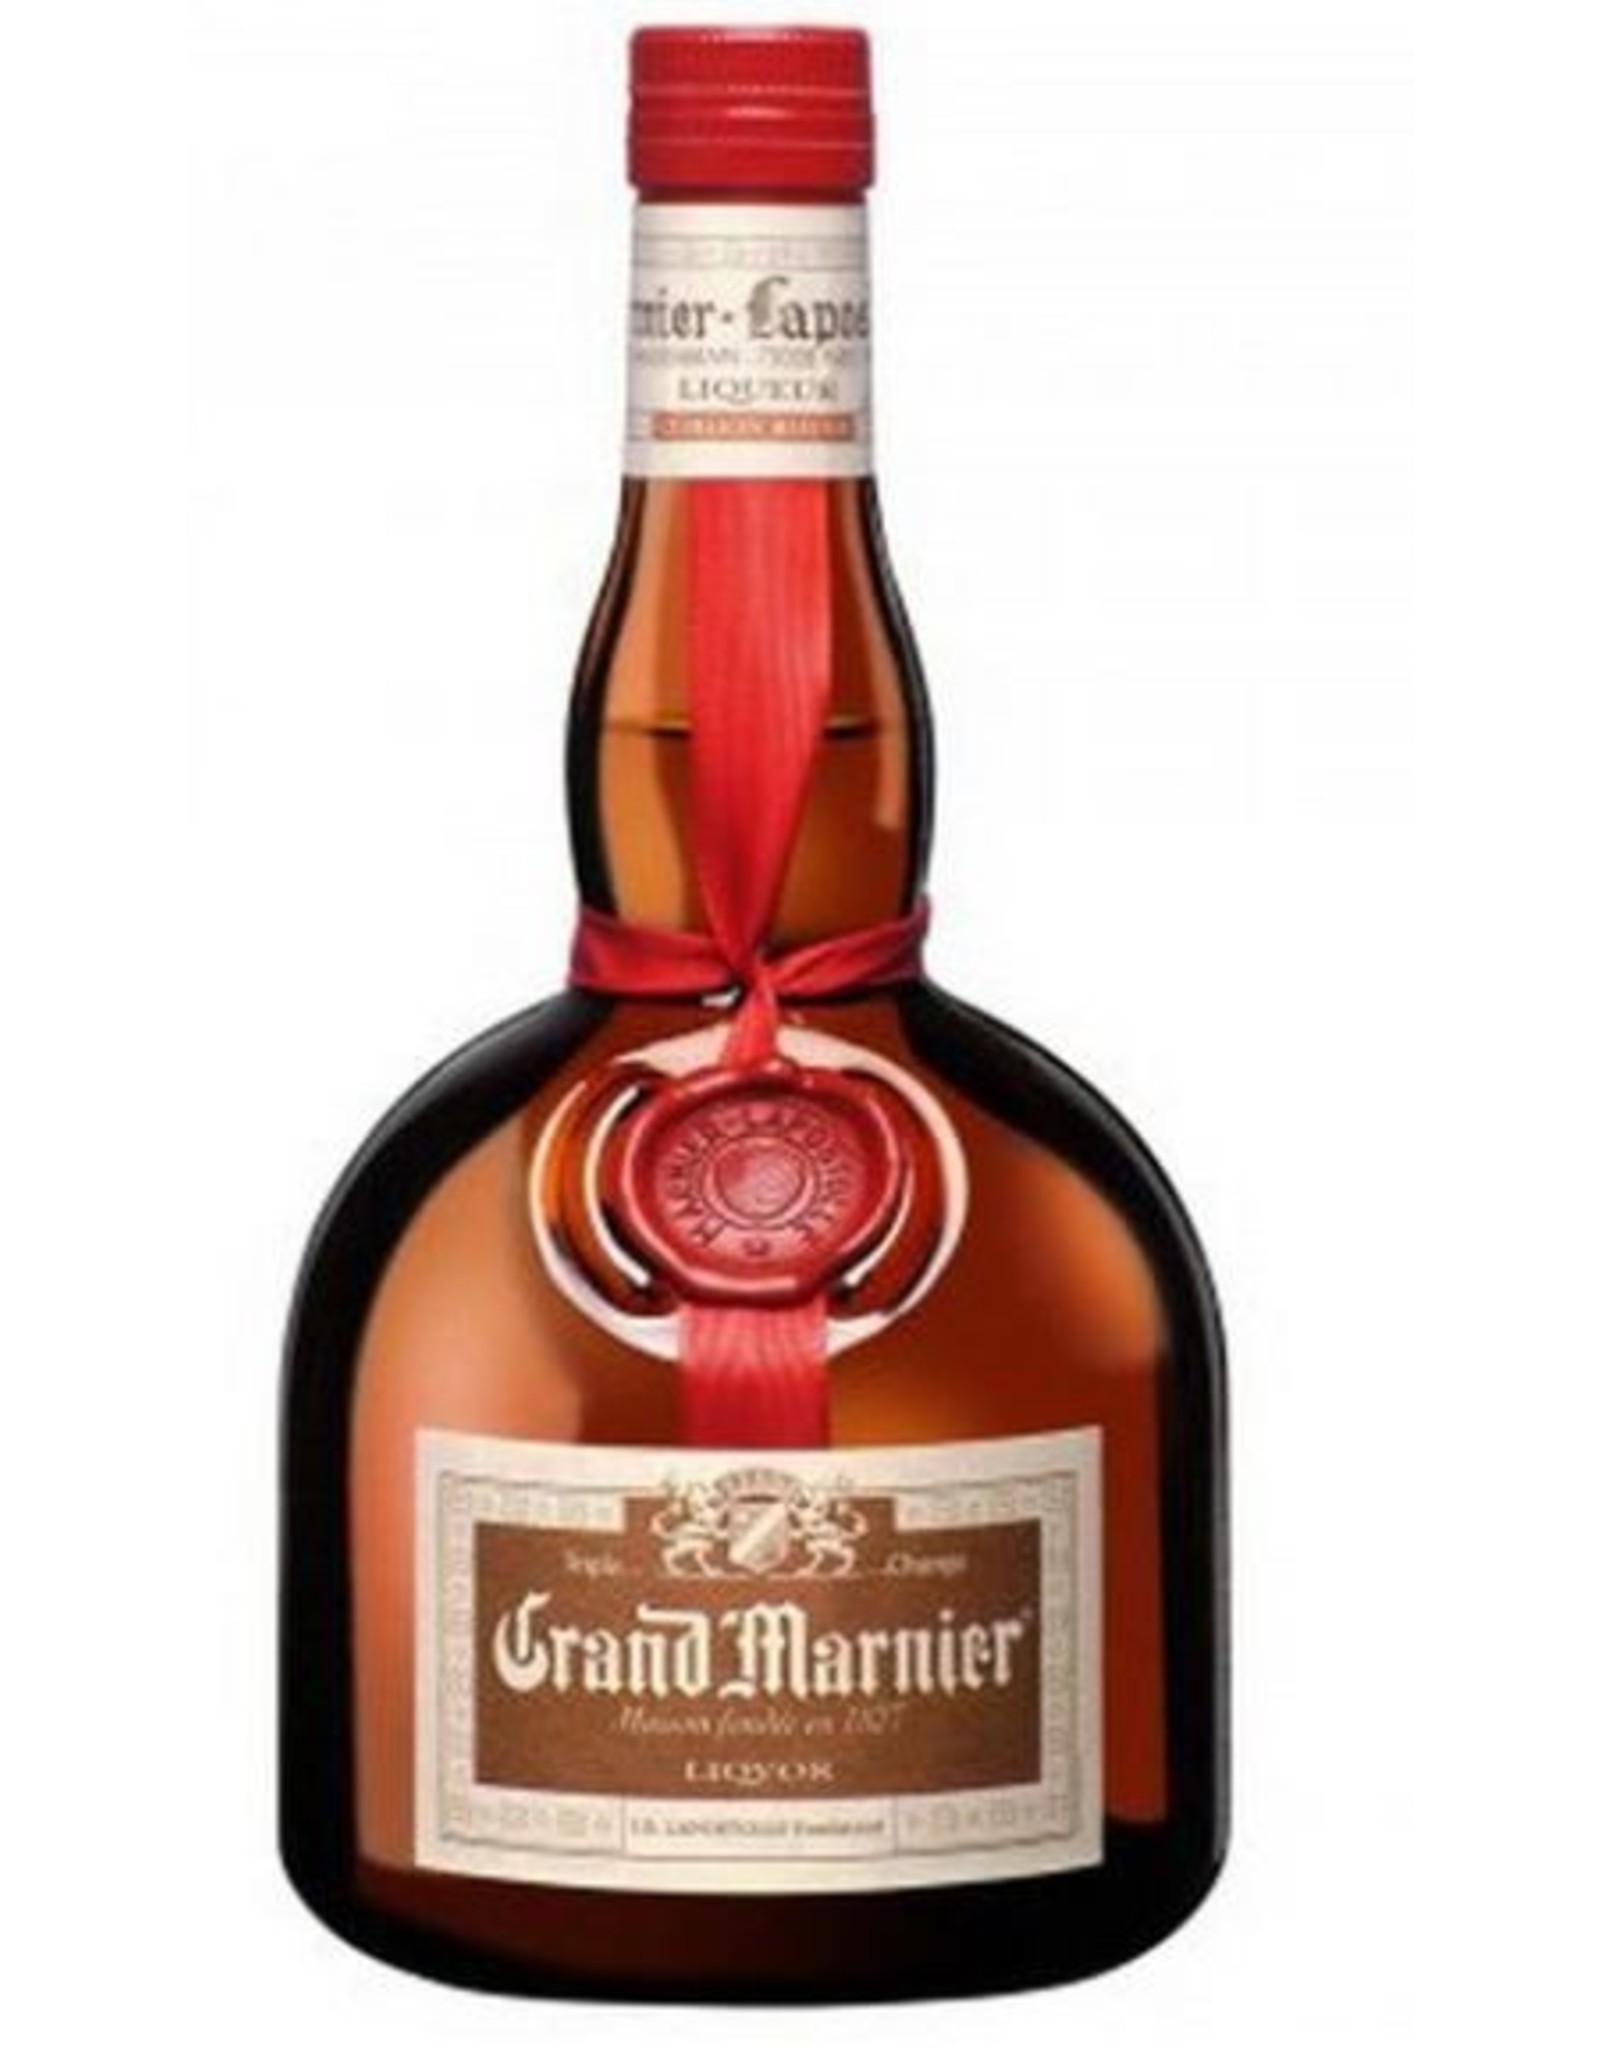 Grand Marnier Grand Marnier Rouge 100cl